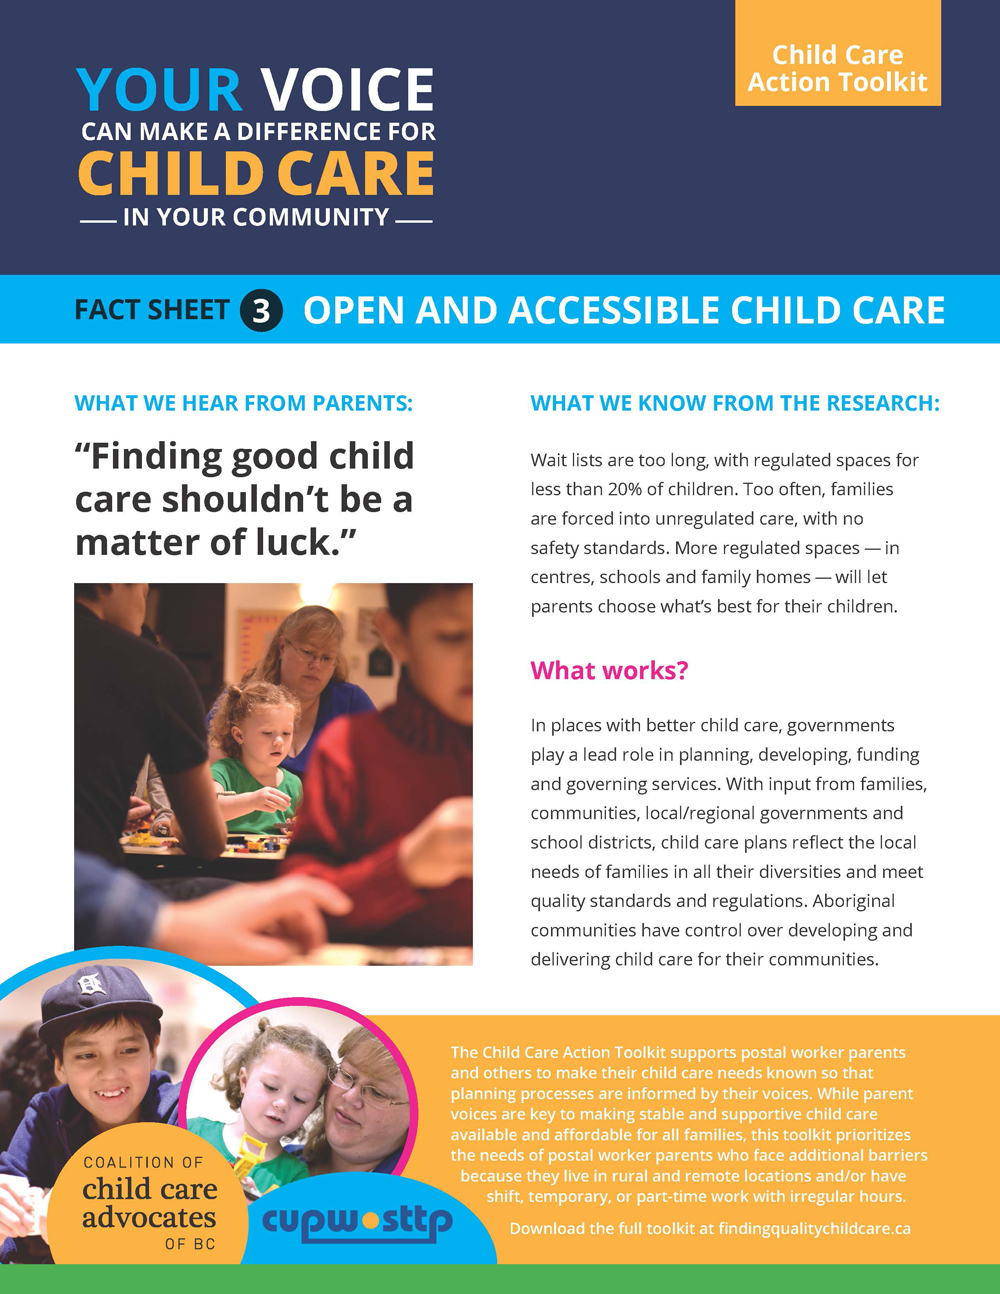 Fact Sheet 3: Open and Accessible Child Care